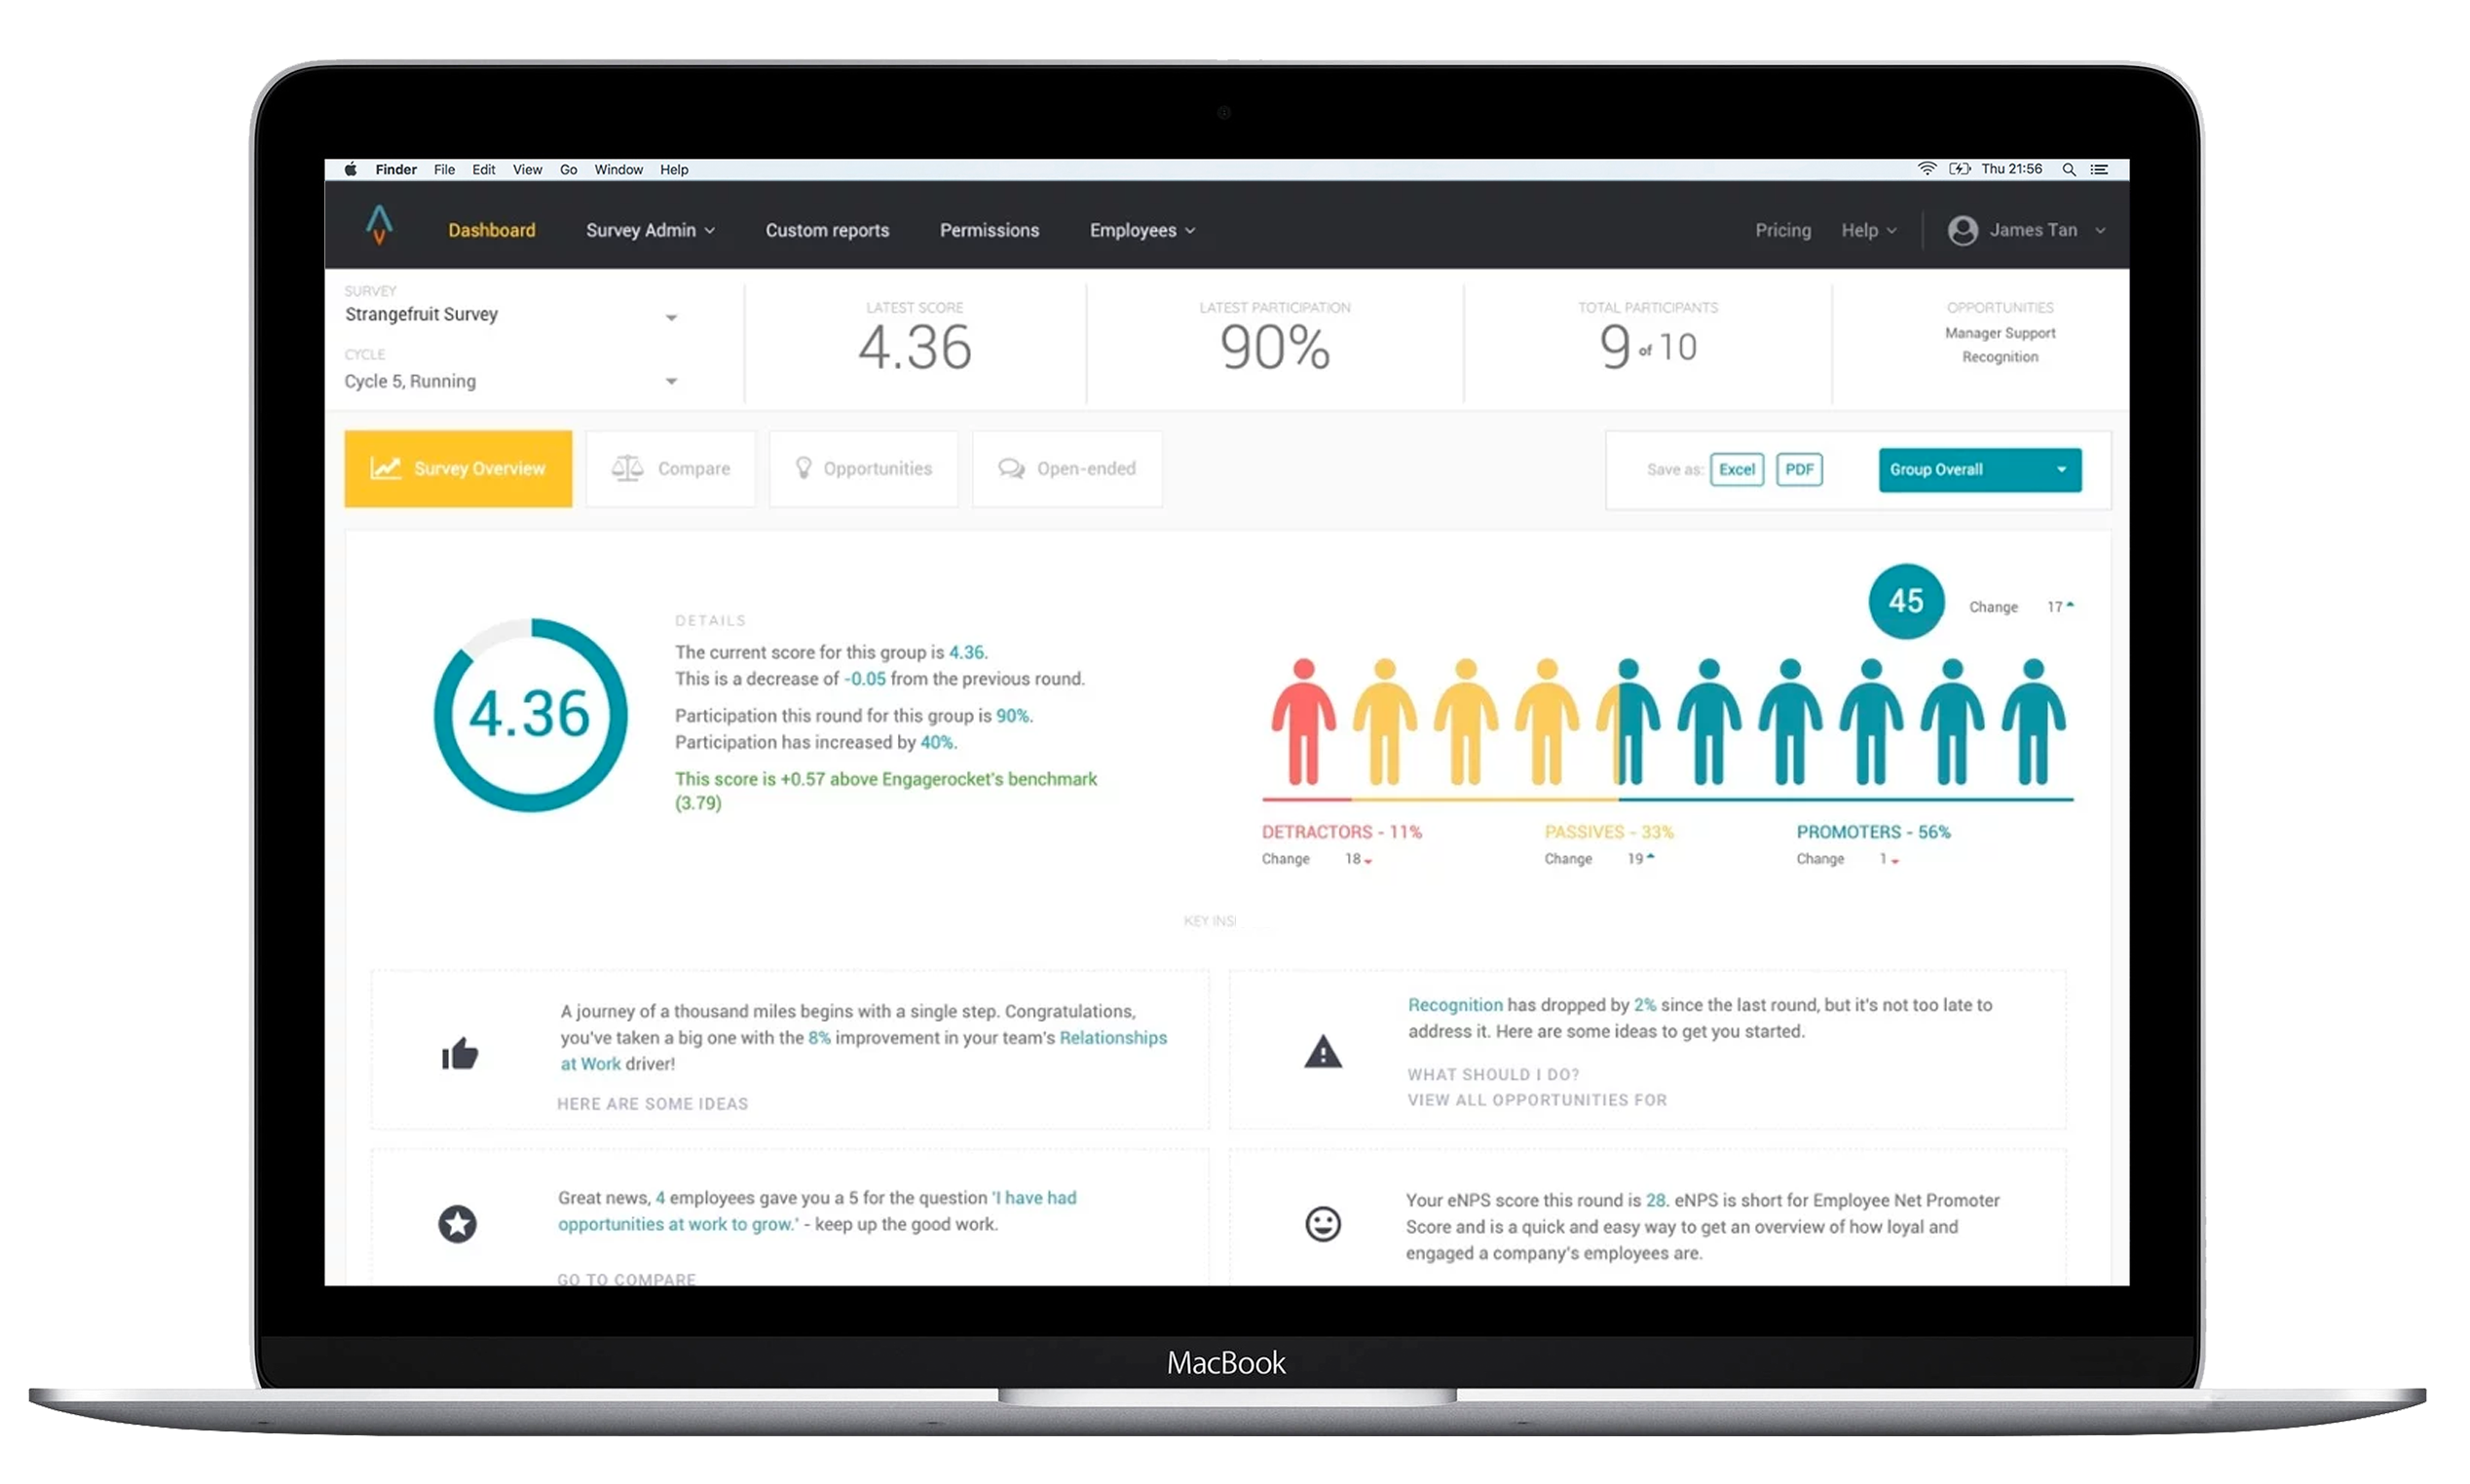 Employee Net Promoter Score (eNPS) and Employee Experience